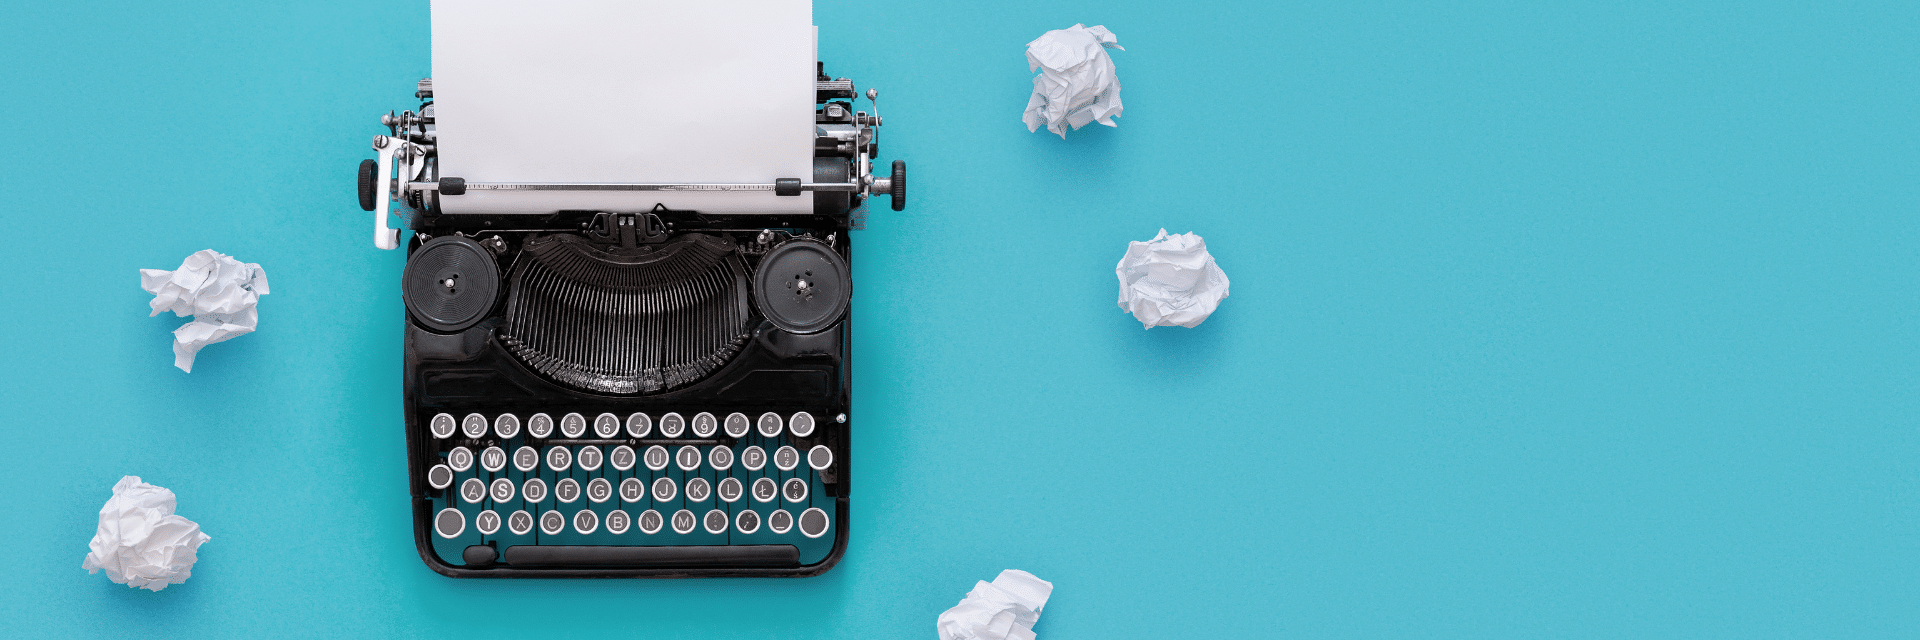 typewriter on a blue background with scrunched up paper surrounding